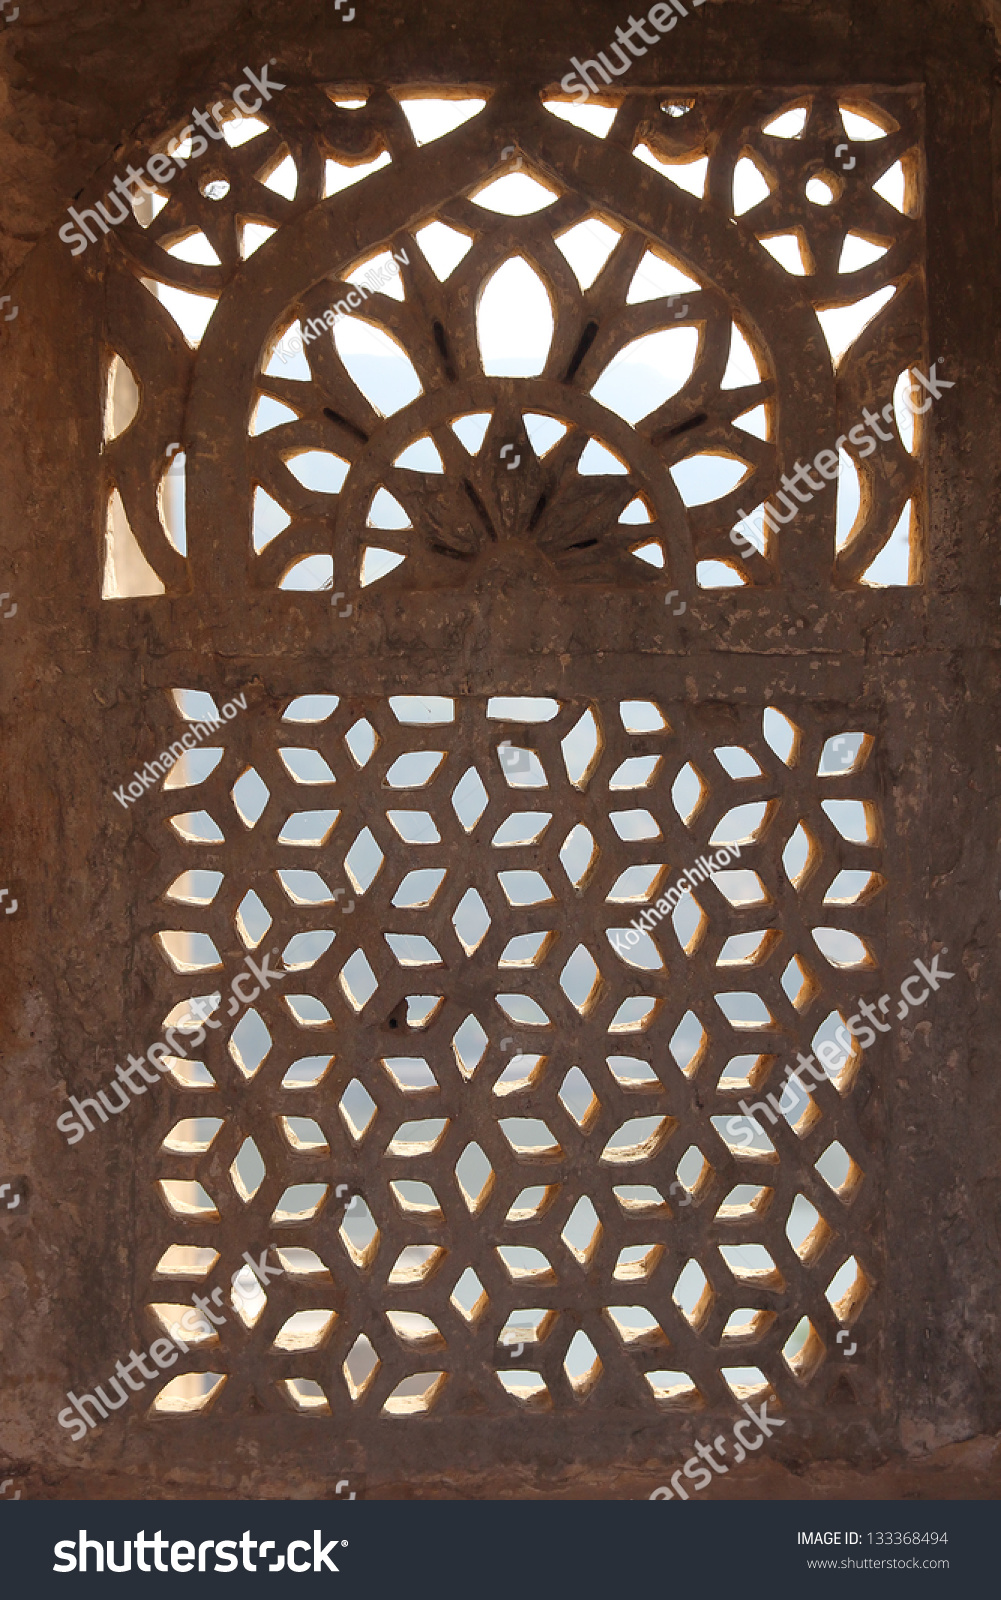 ornament lattice window rajasthan india stock photo edit now